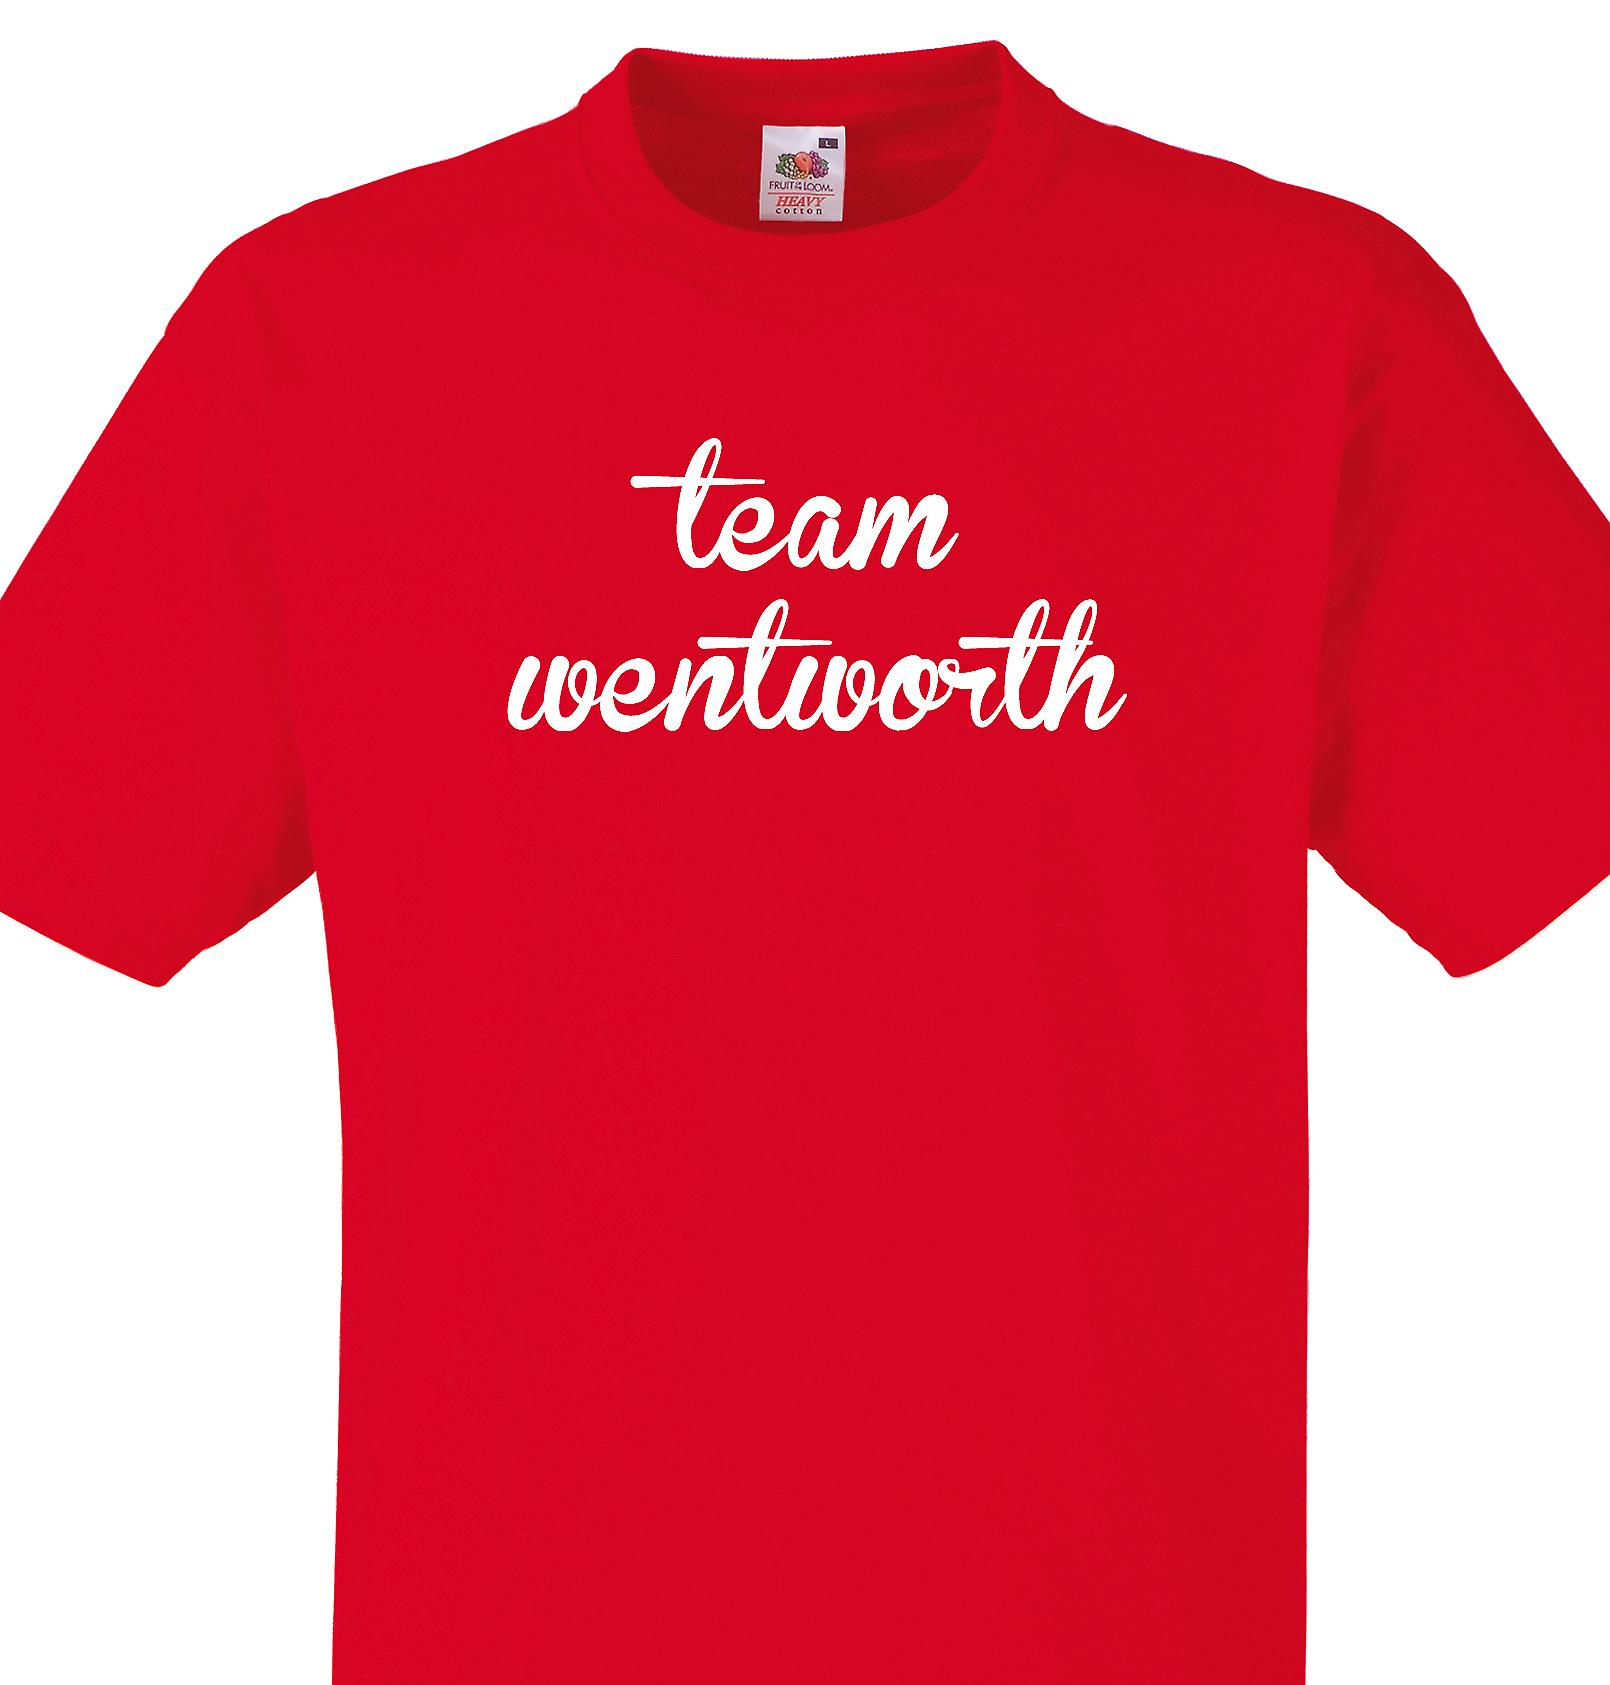 Team Wentworth Red T shirt